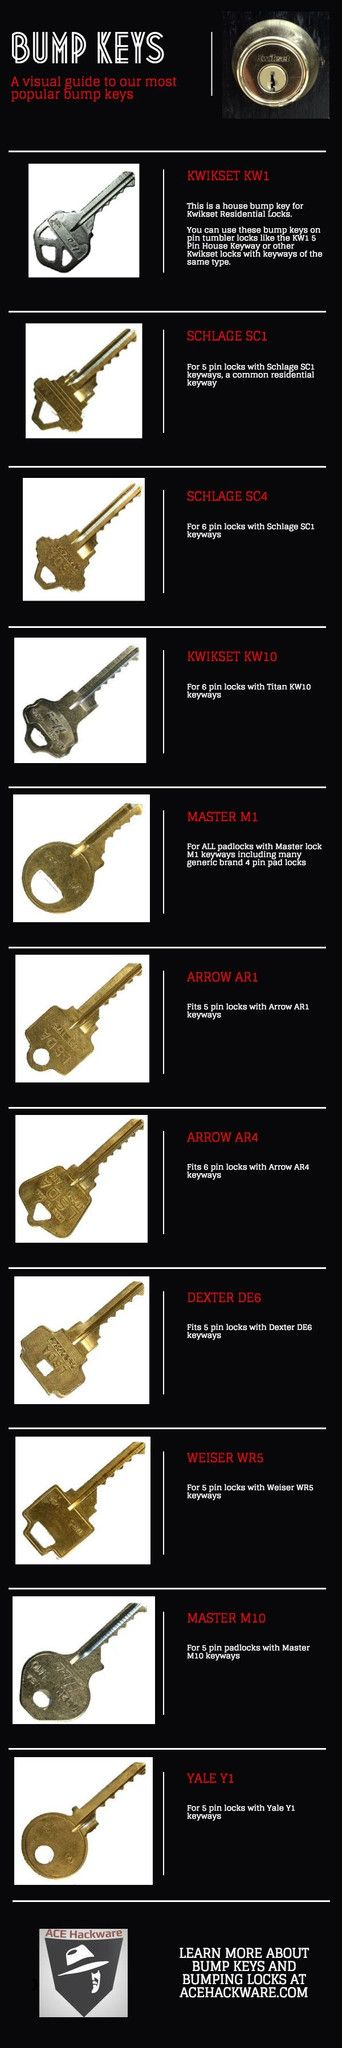 A Visual Guide to Bump Keys | ACE Hackware #lockbumping #security